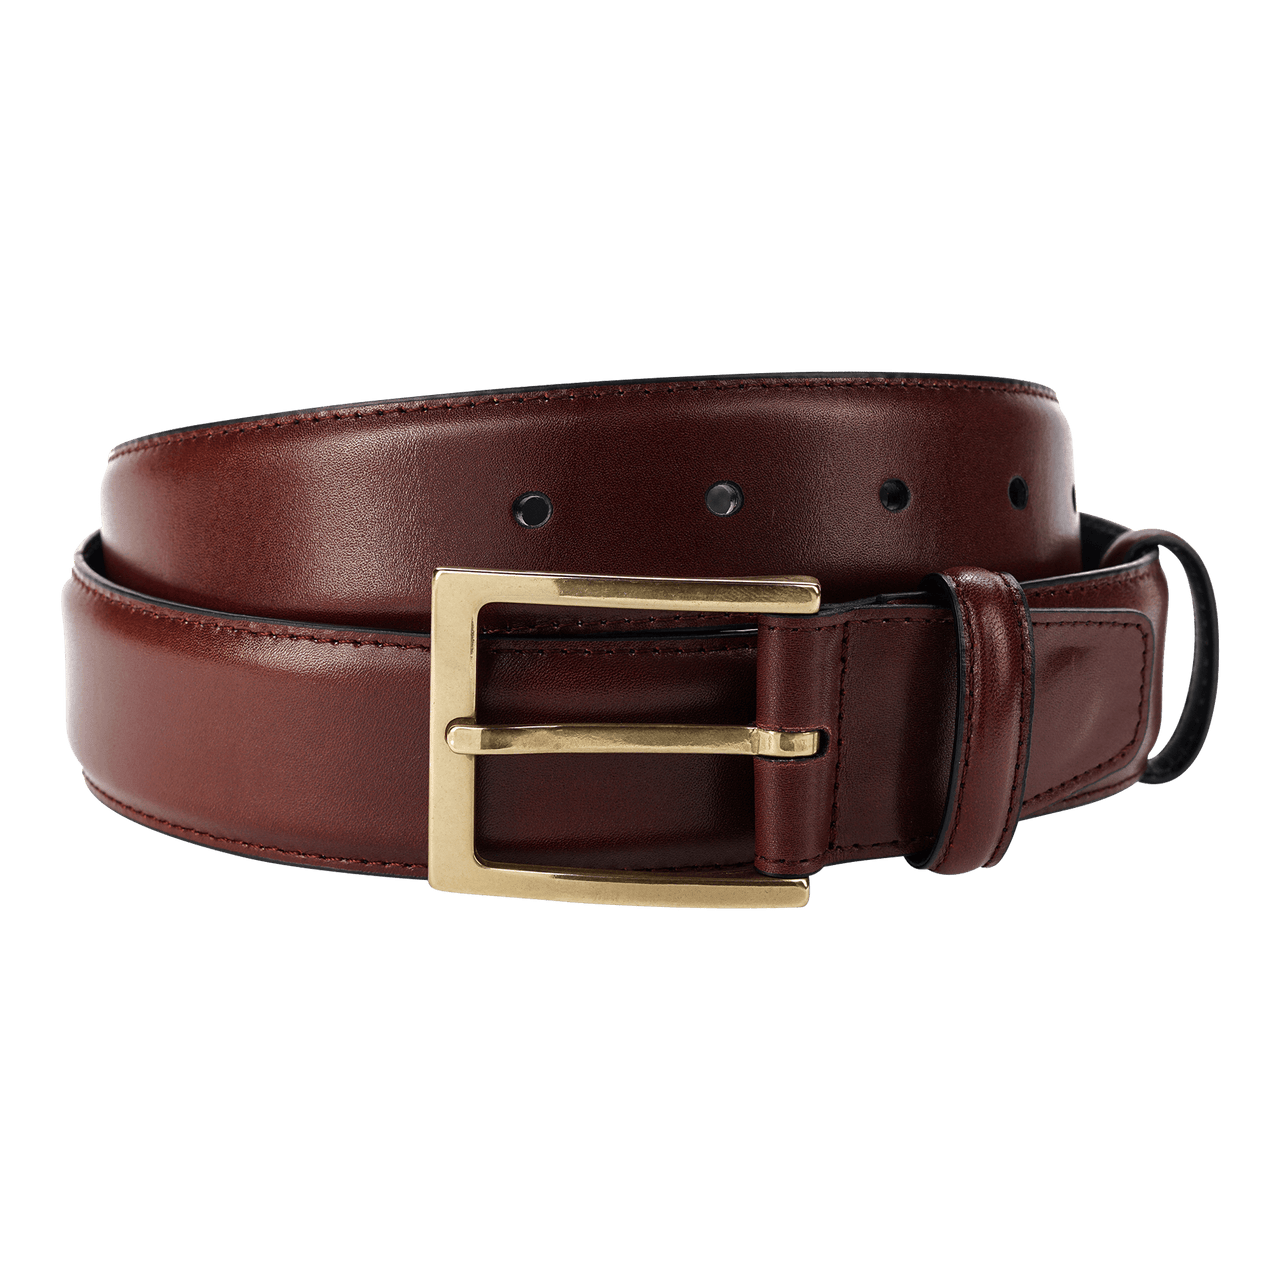 Carmina Belt in Burgundy Calf with Gold Buckle Belts Carmina